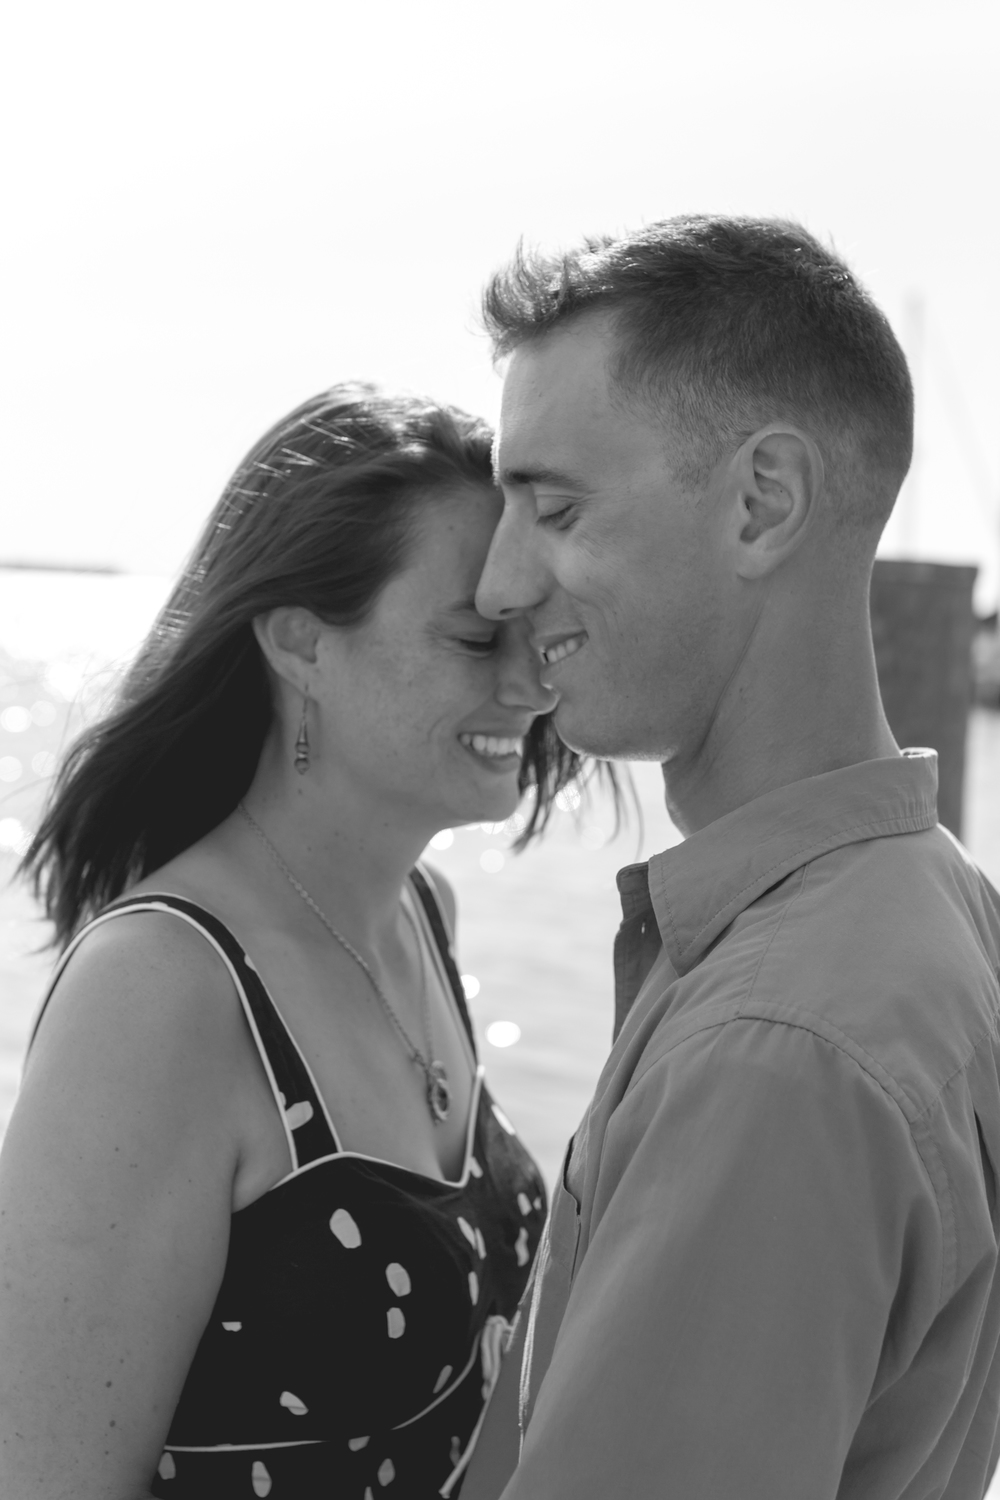 Annapolis_Cathee_Tony_Engagement_Photography-5.jpg